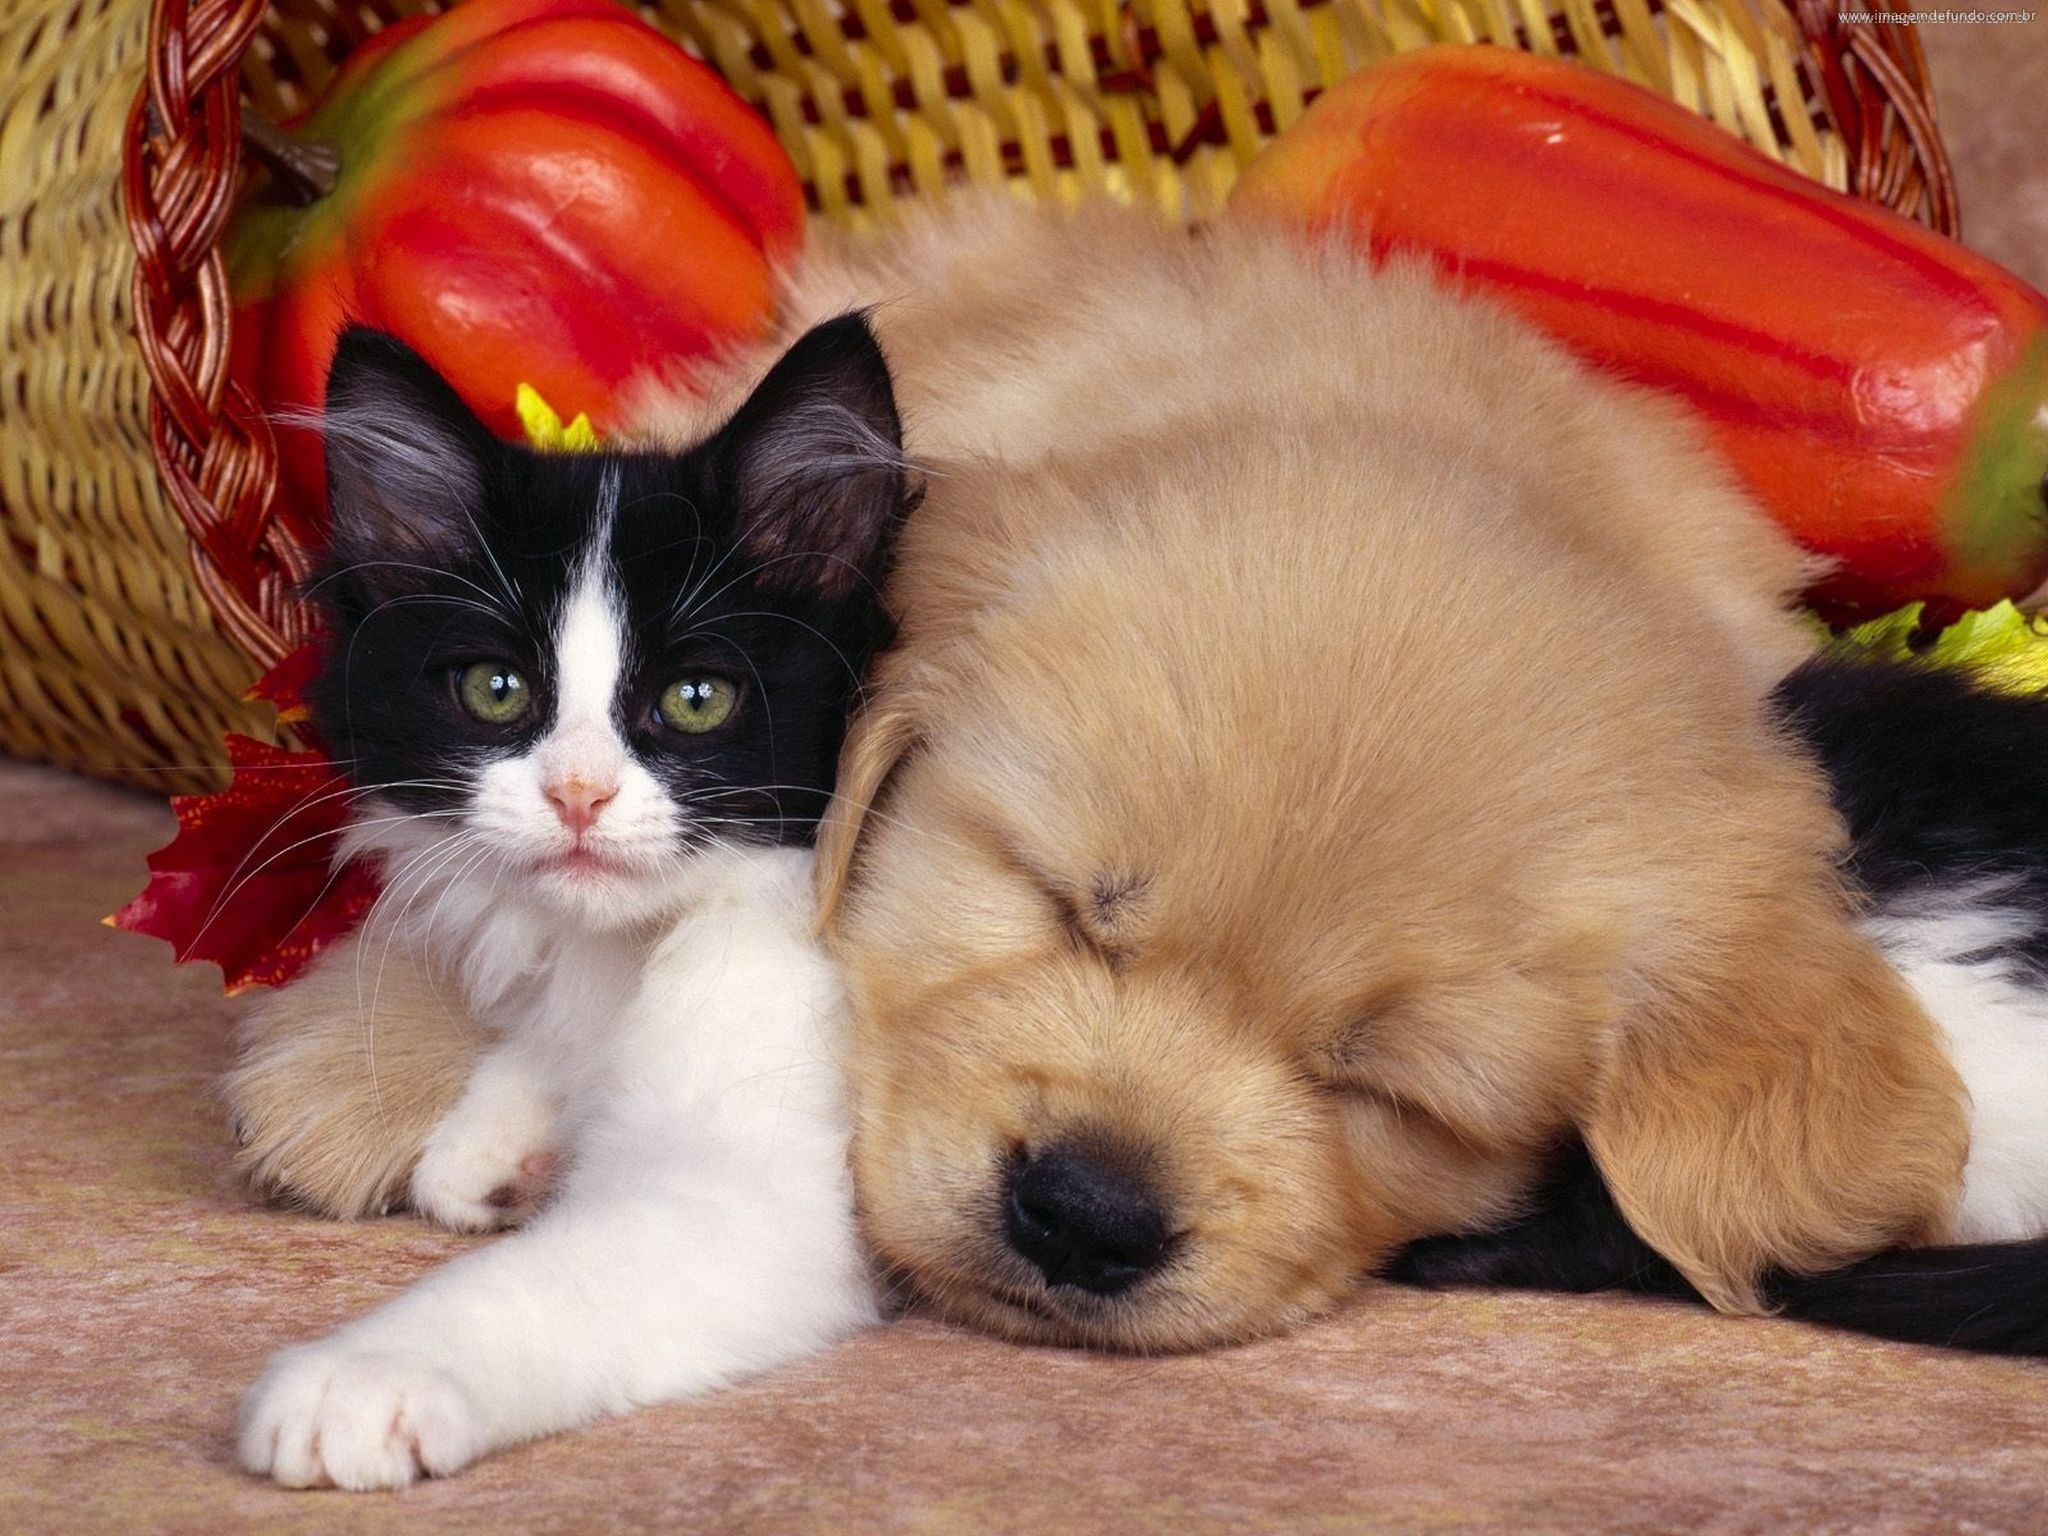 6 Cute Dog And Cat Kissing That Look So Romantic All Puppies Pictures And Wallpapers Perro Y Gato Juntos Mascotas Animales